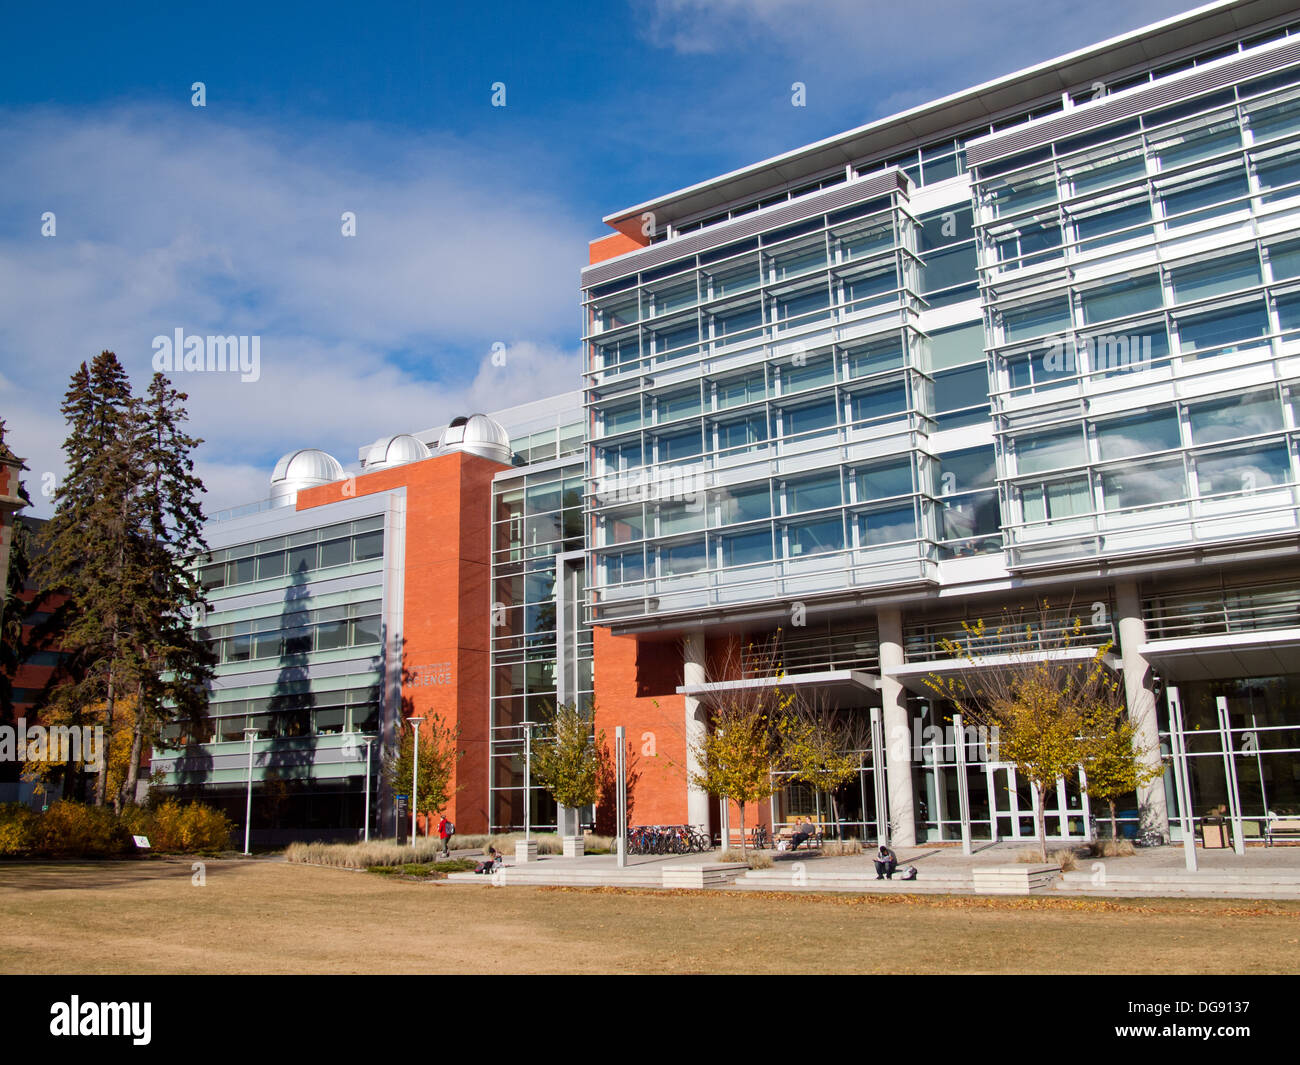 The Faculty of Science Centennial Centre for Interdisciplinary Science (CCIS) at the University of Alberta in Edmonton, Canada. - Stock Image